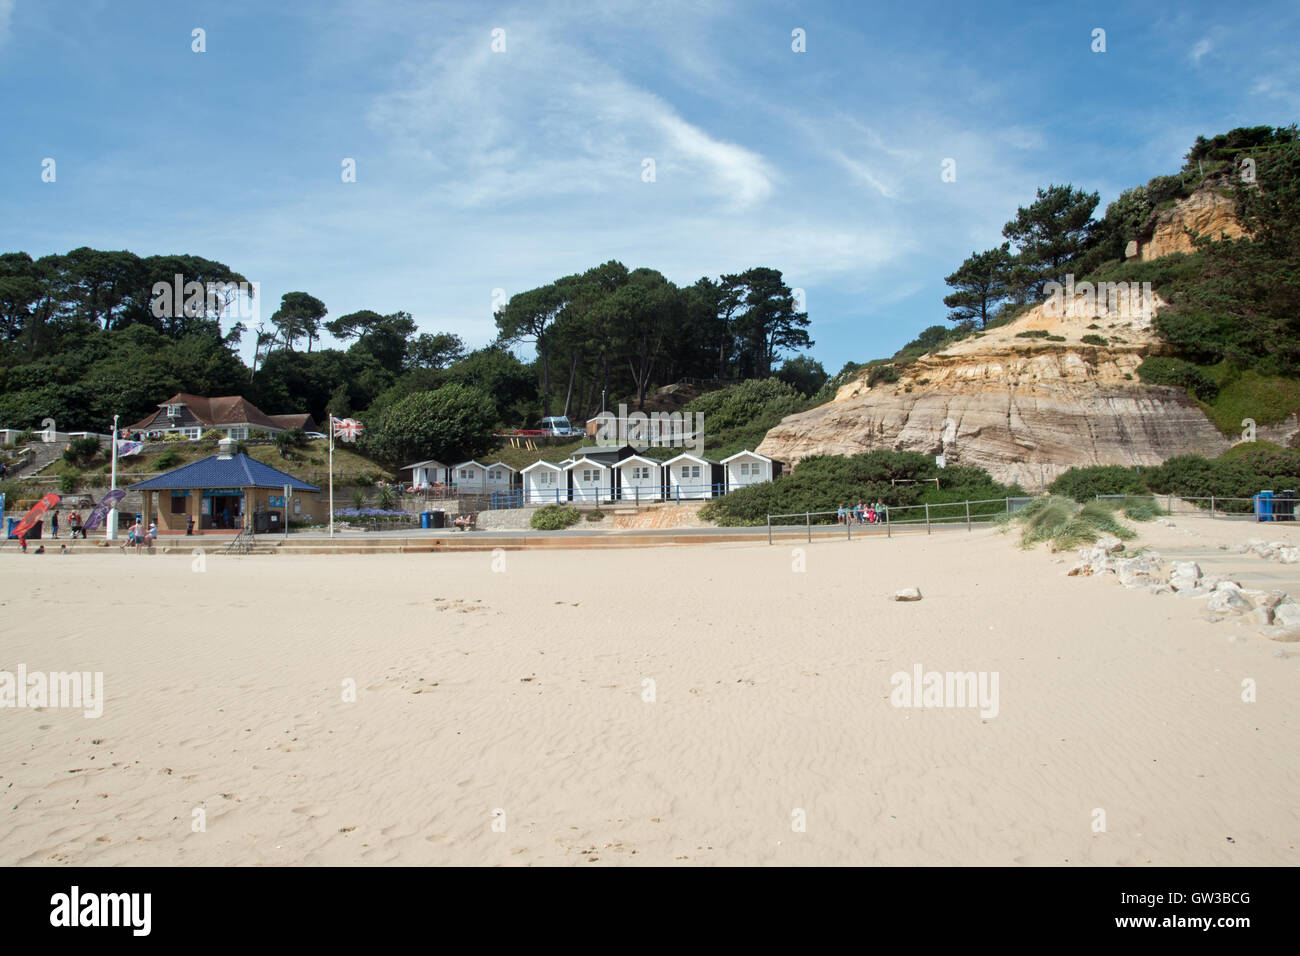 The sandy beach and cliffs at Branksome Chine, Poole in Dorset Stock Photo